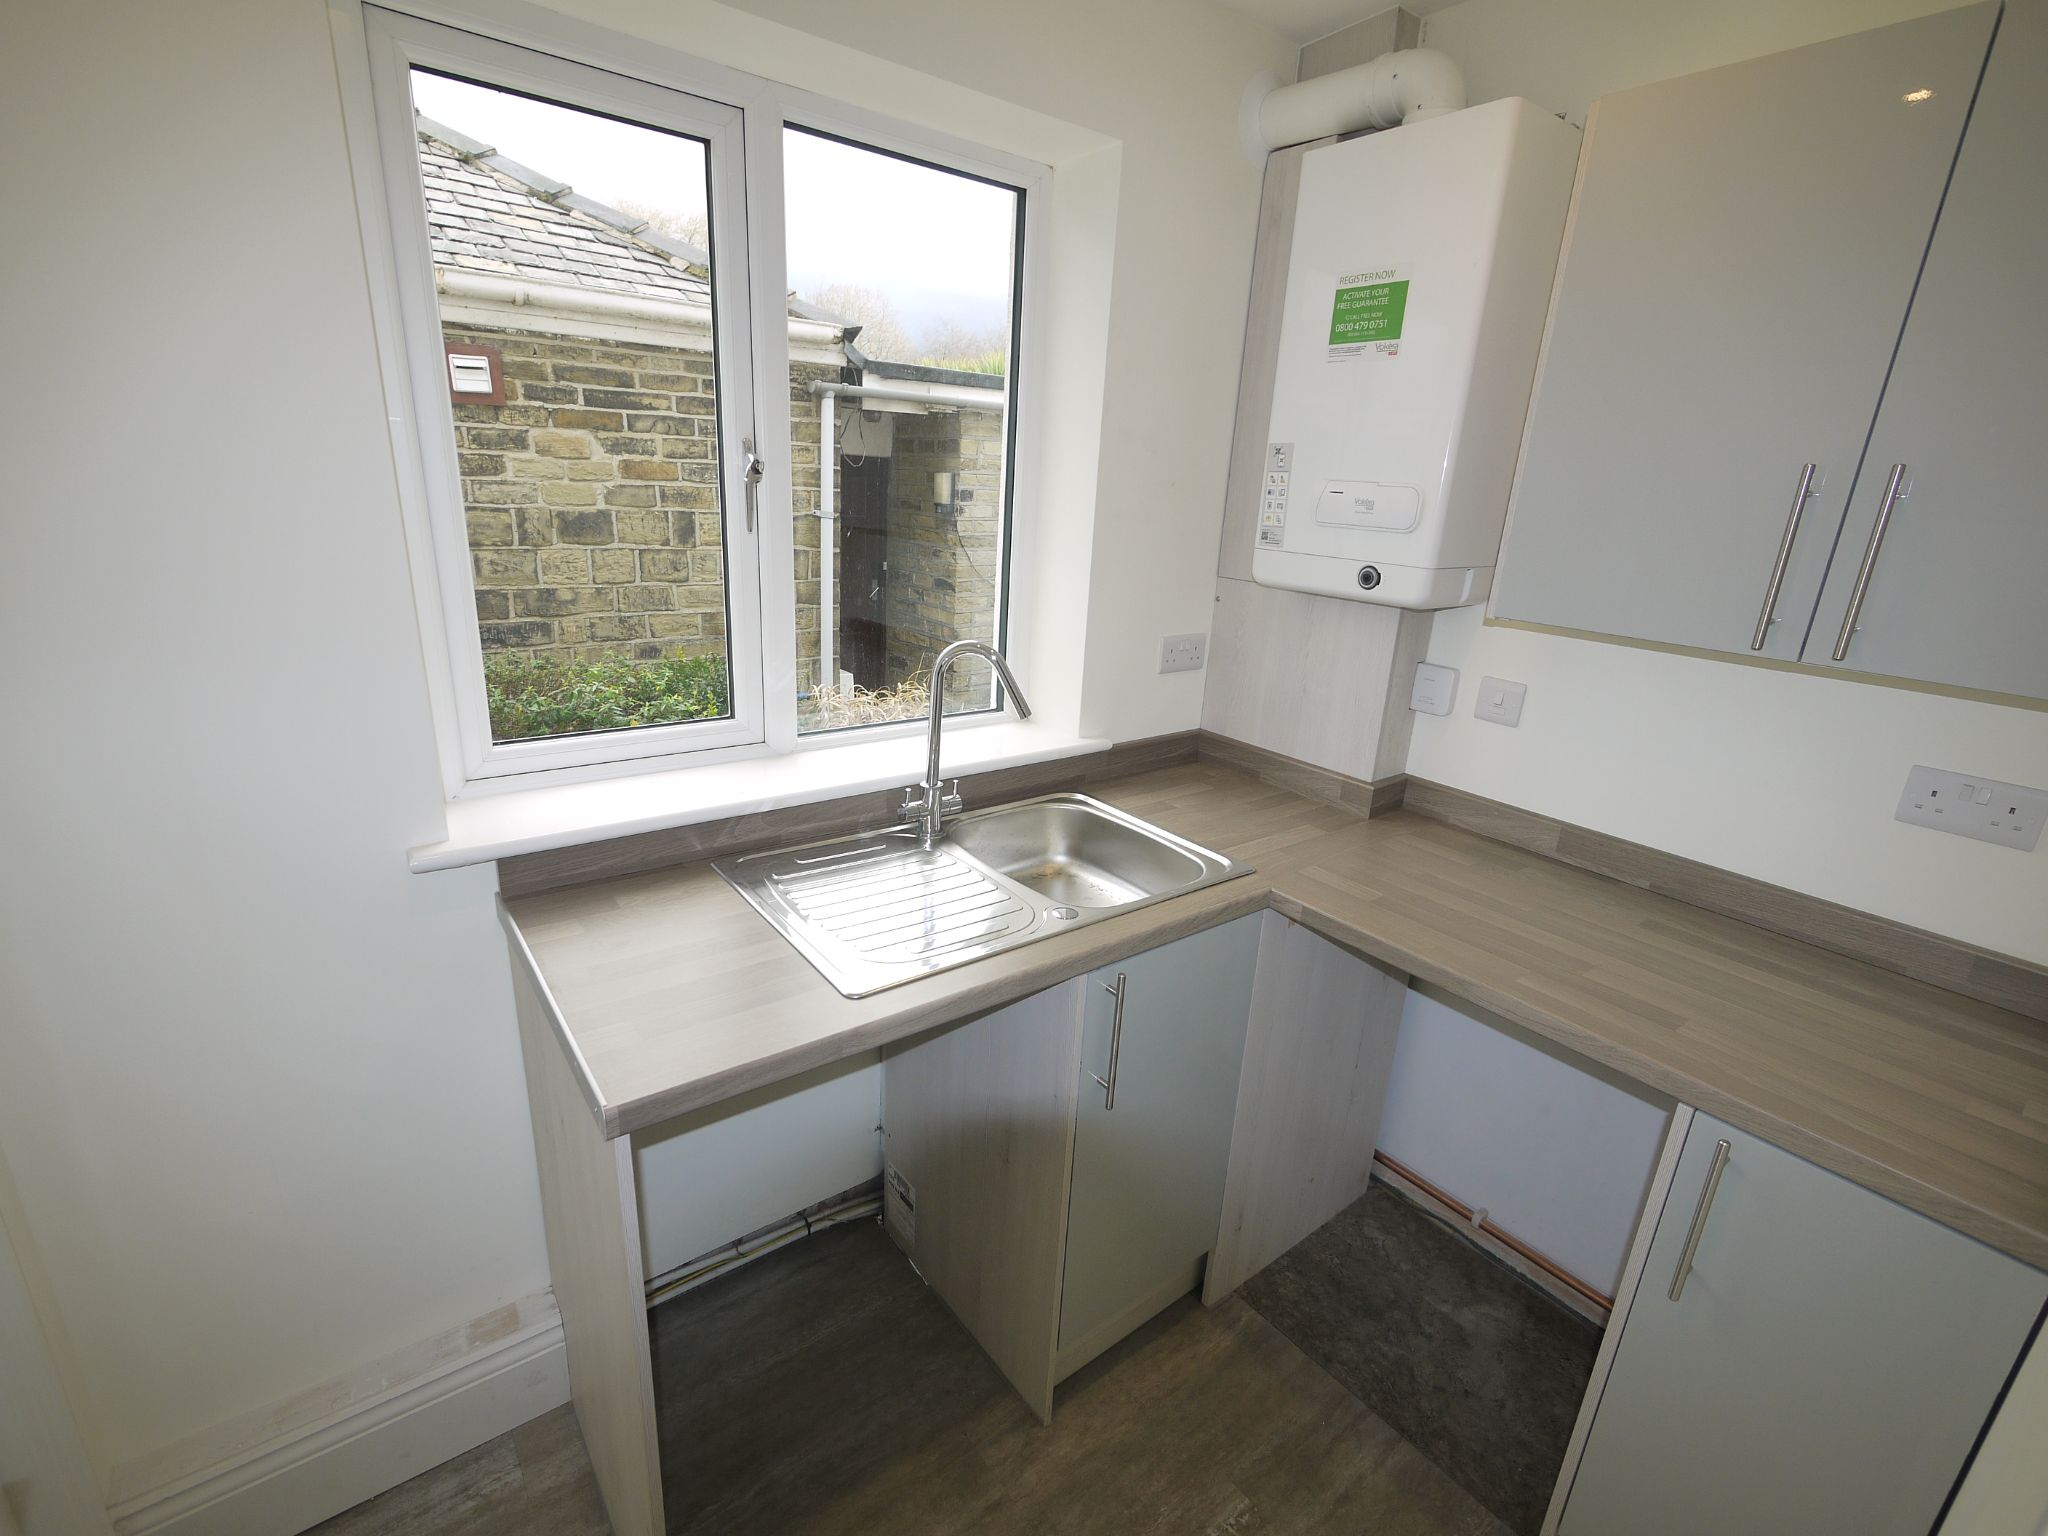 3 bedroom end terraced house SSTC in Brighouse - Utility room.